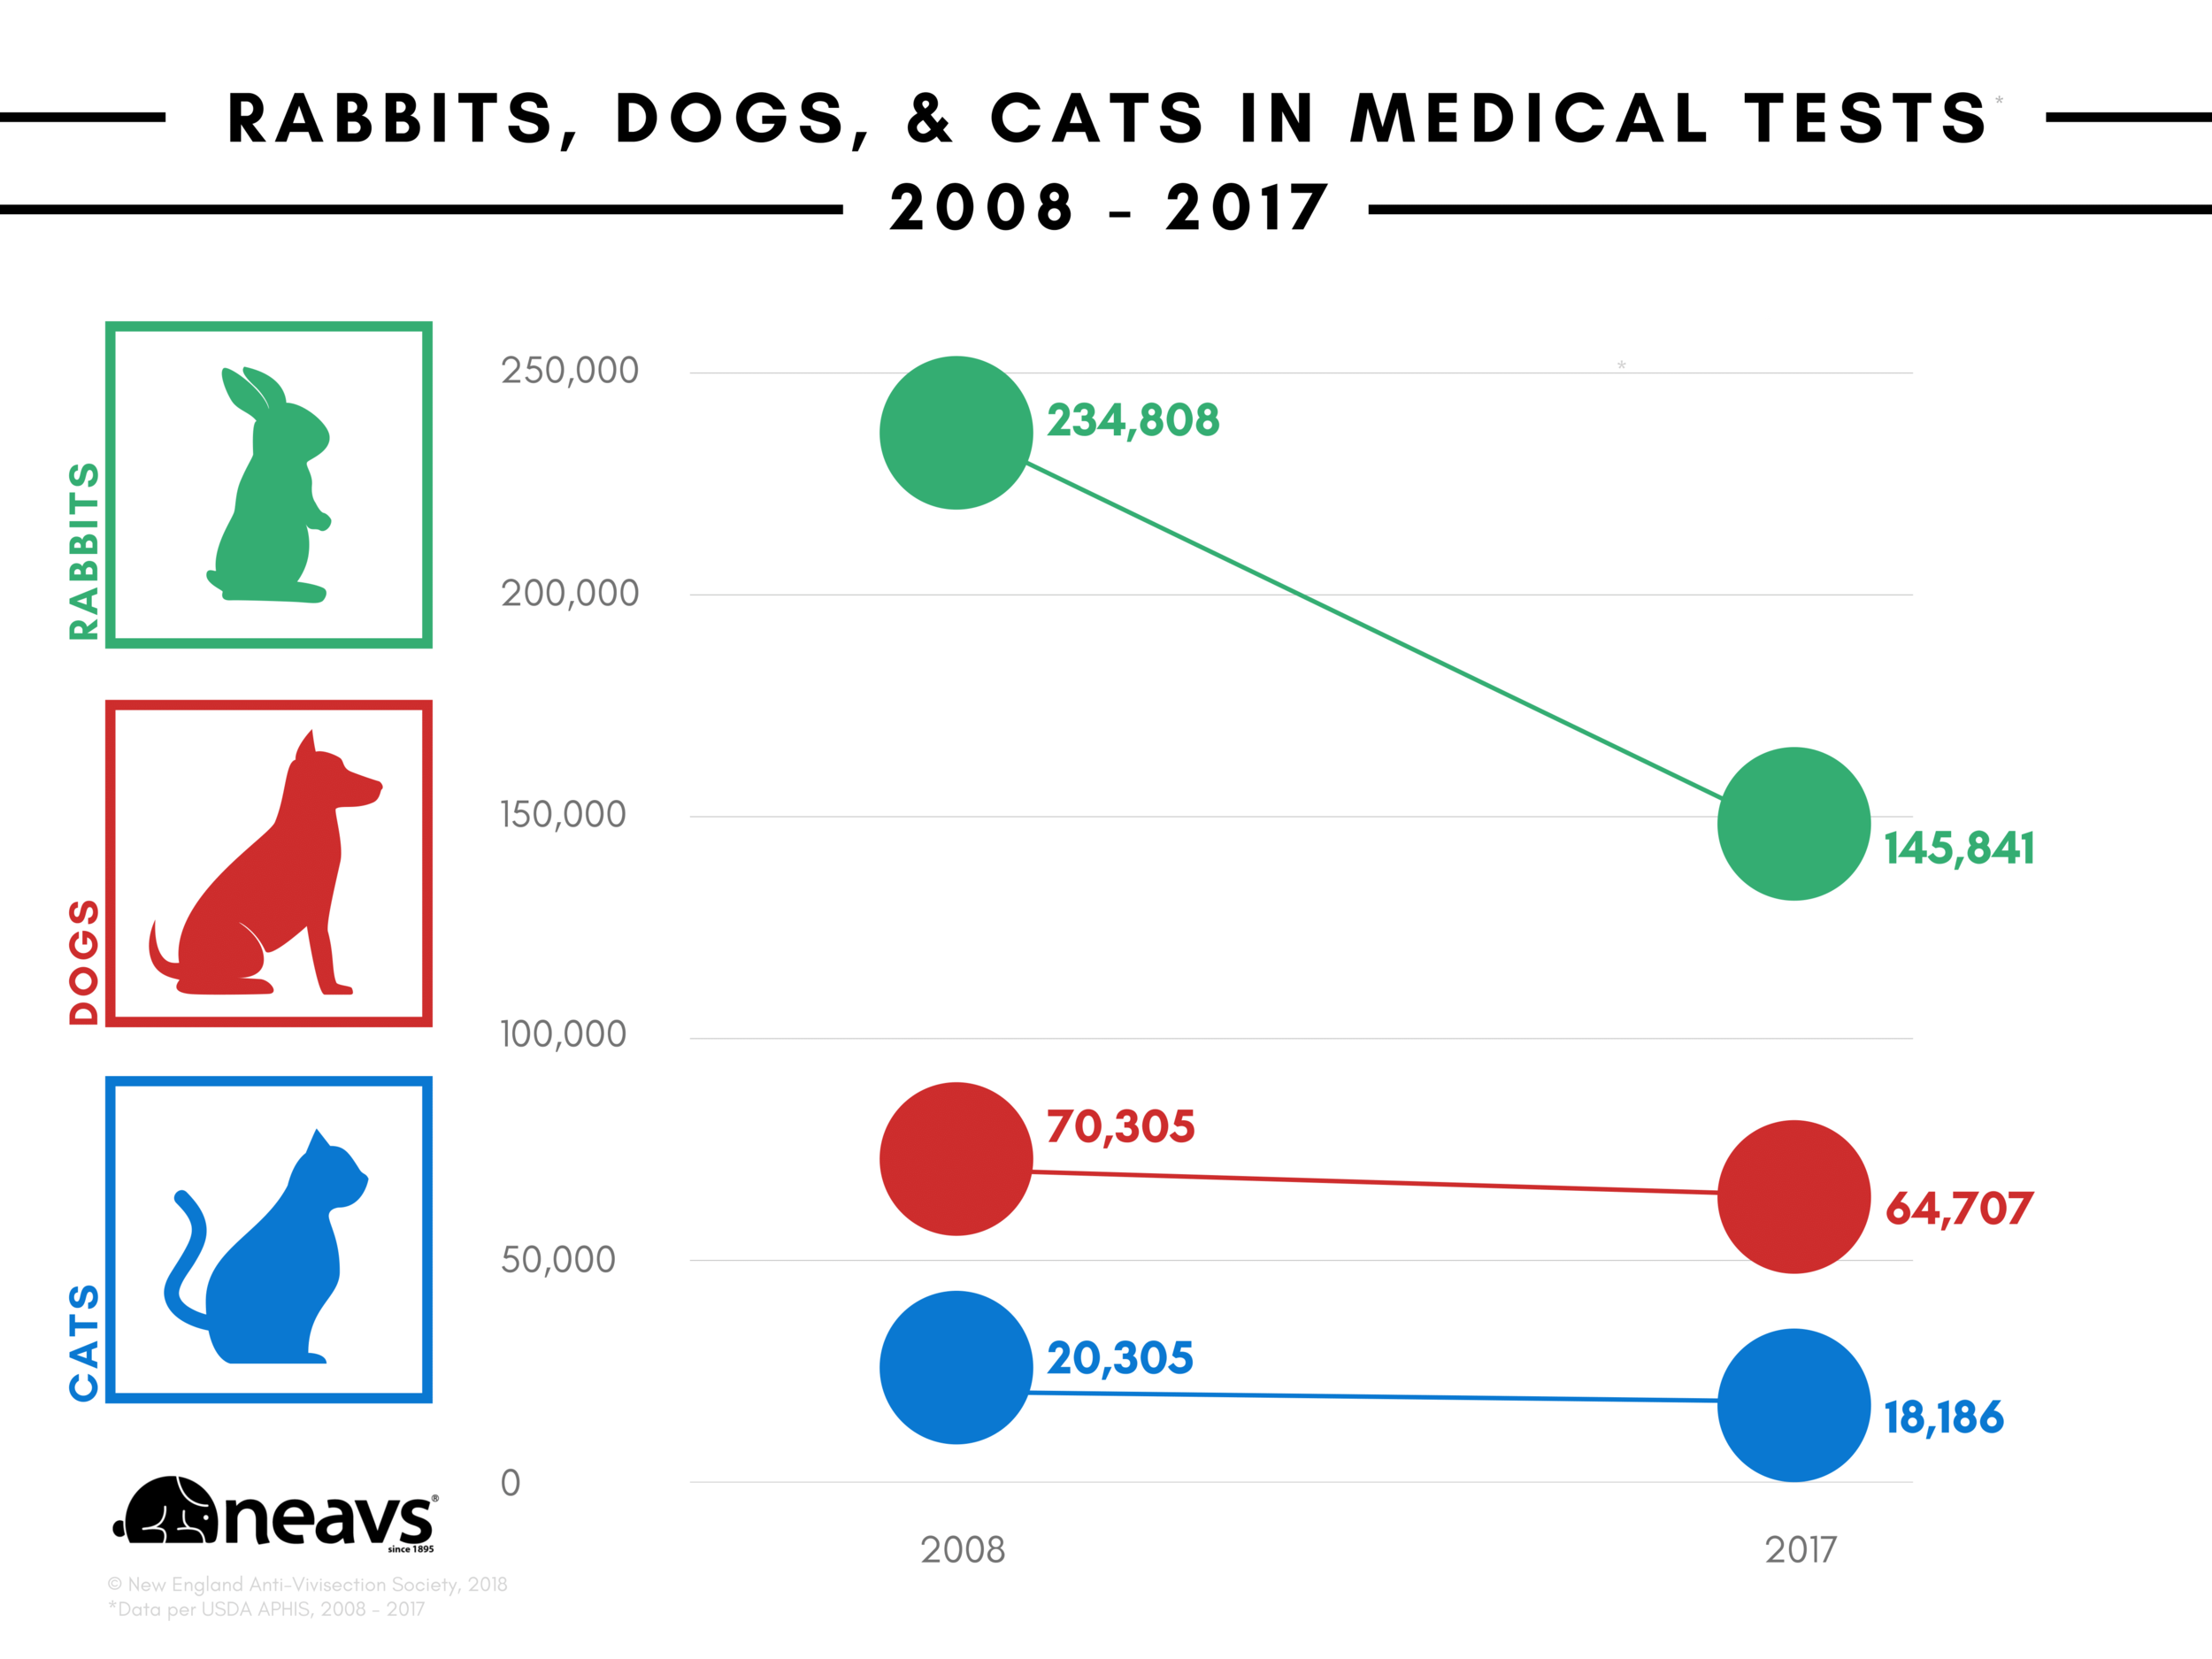 neavs infographic facebook blog 2008 2017 rabbits dogs and cats in medical tests.png